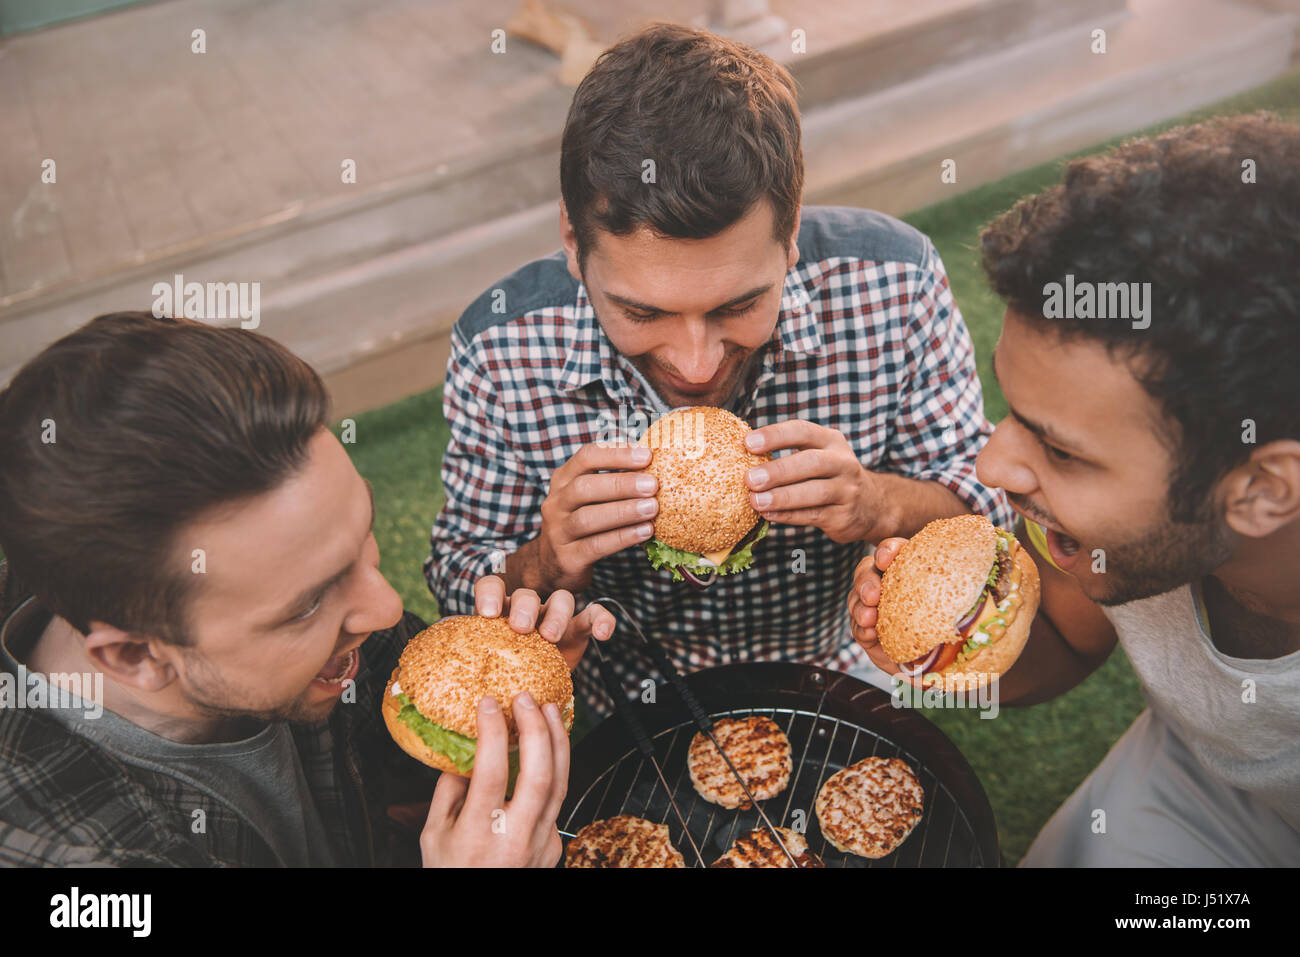 High angle view of three young men eating fresh hamburgers above grill - Stock Image